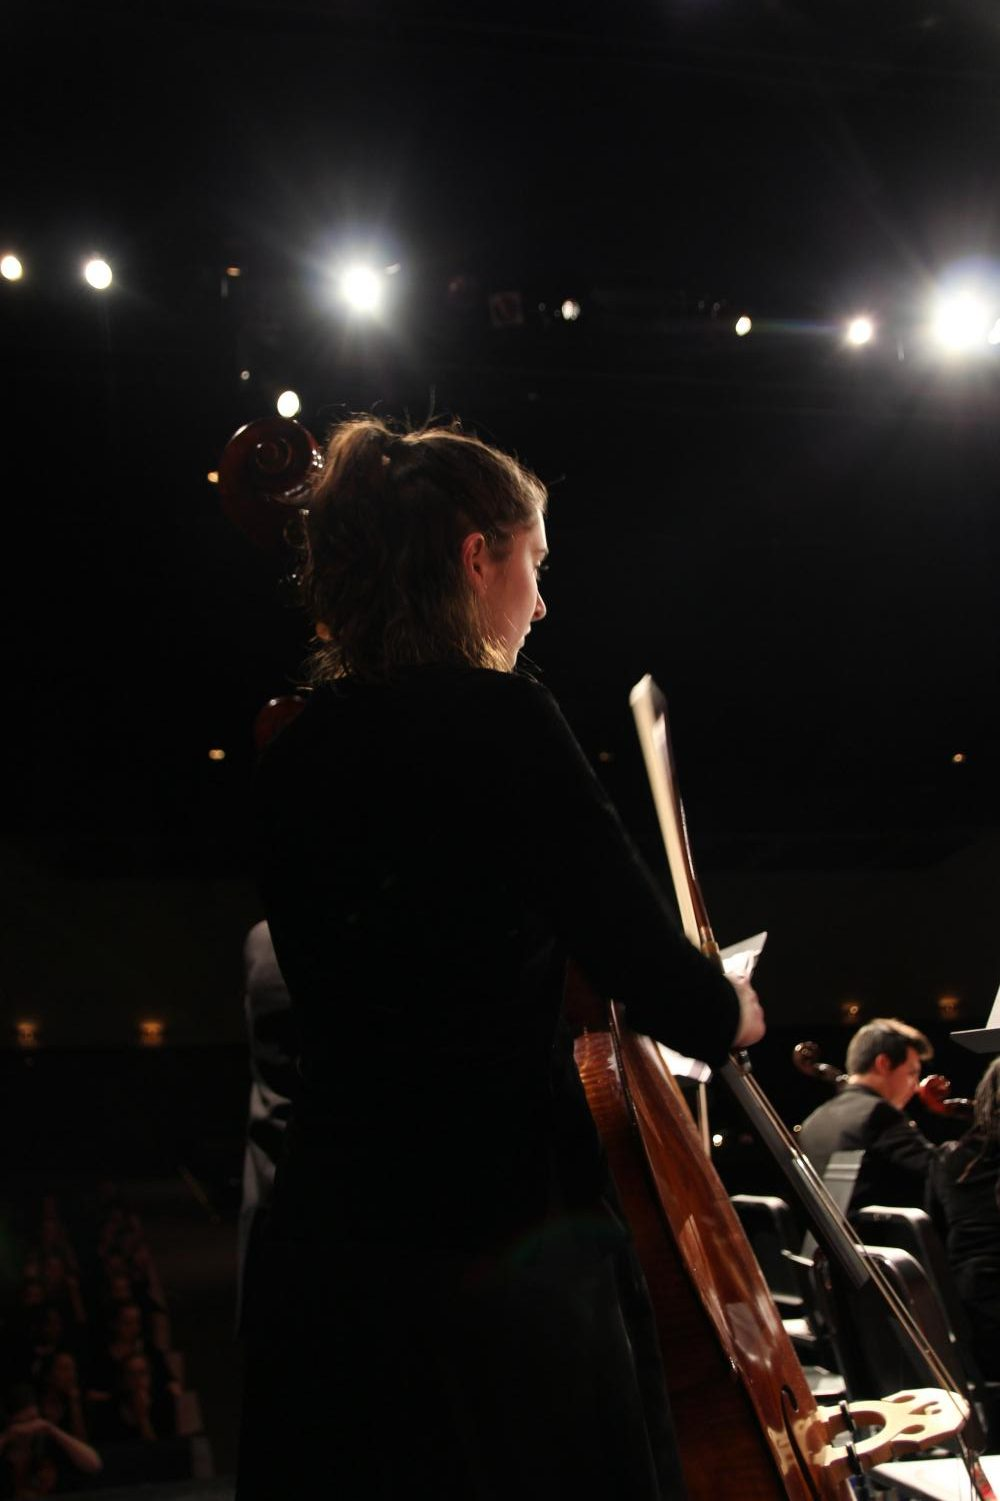 As+the+stage+lights+gleamed+in+front+of+her%2C+Lily+Van+Rees%2C+sophomore%2C+plays+her+double+base+at+the+orchestra+Winter+Concert+Dec.+6.+